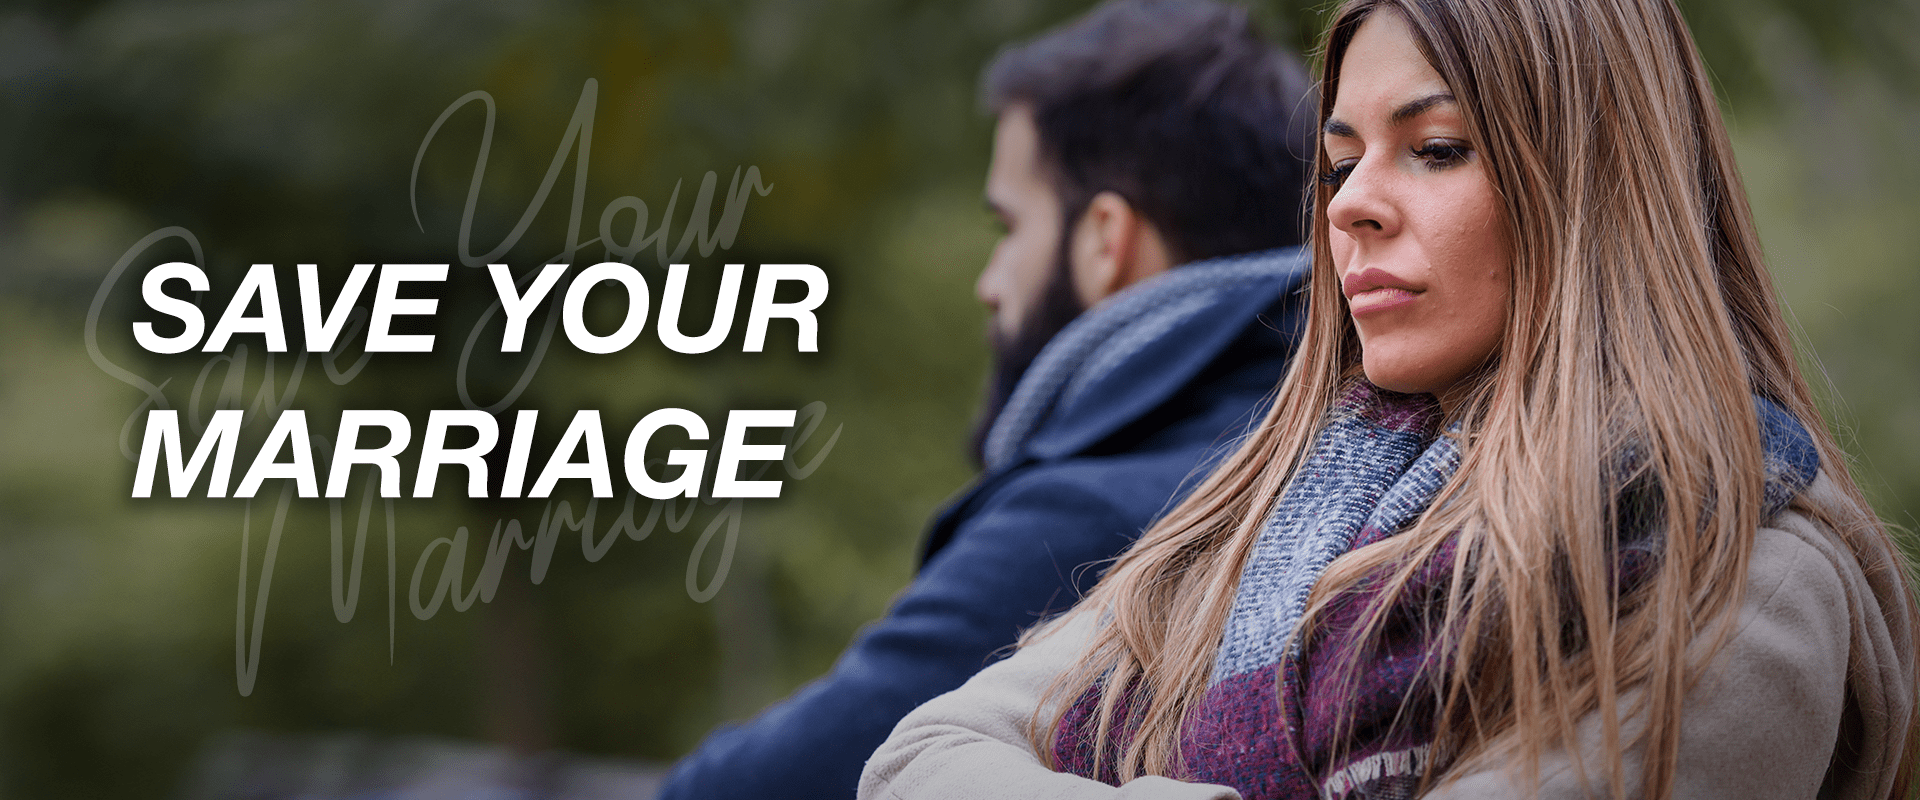 save-your-marriage